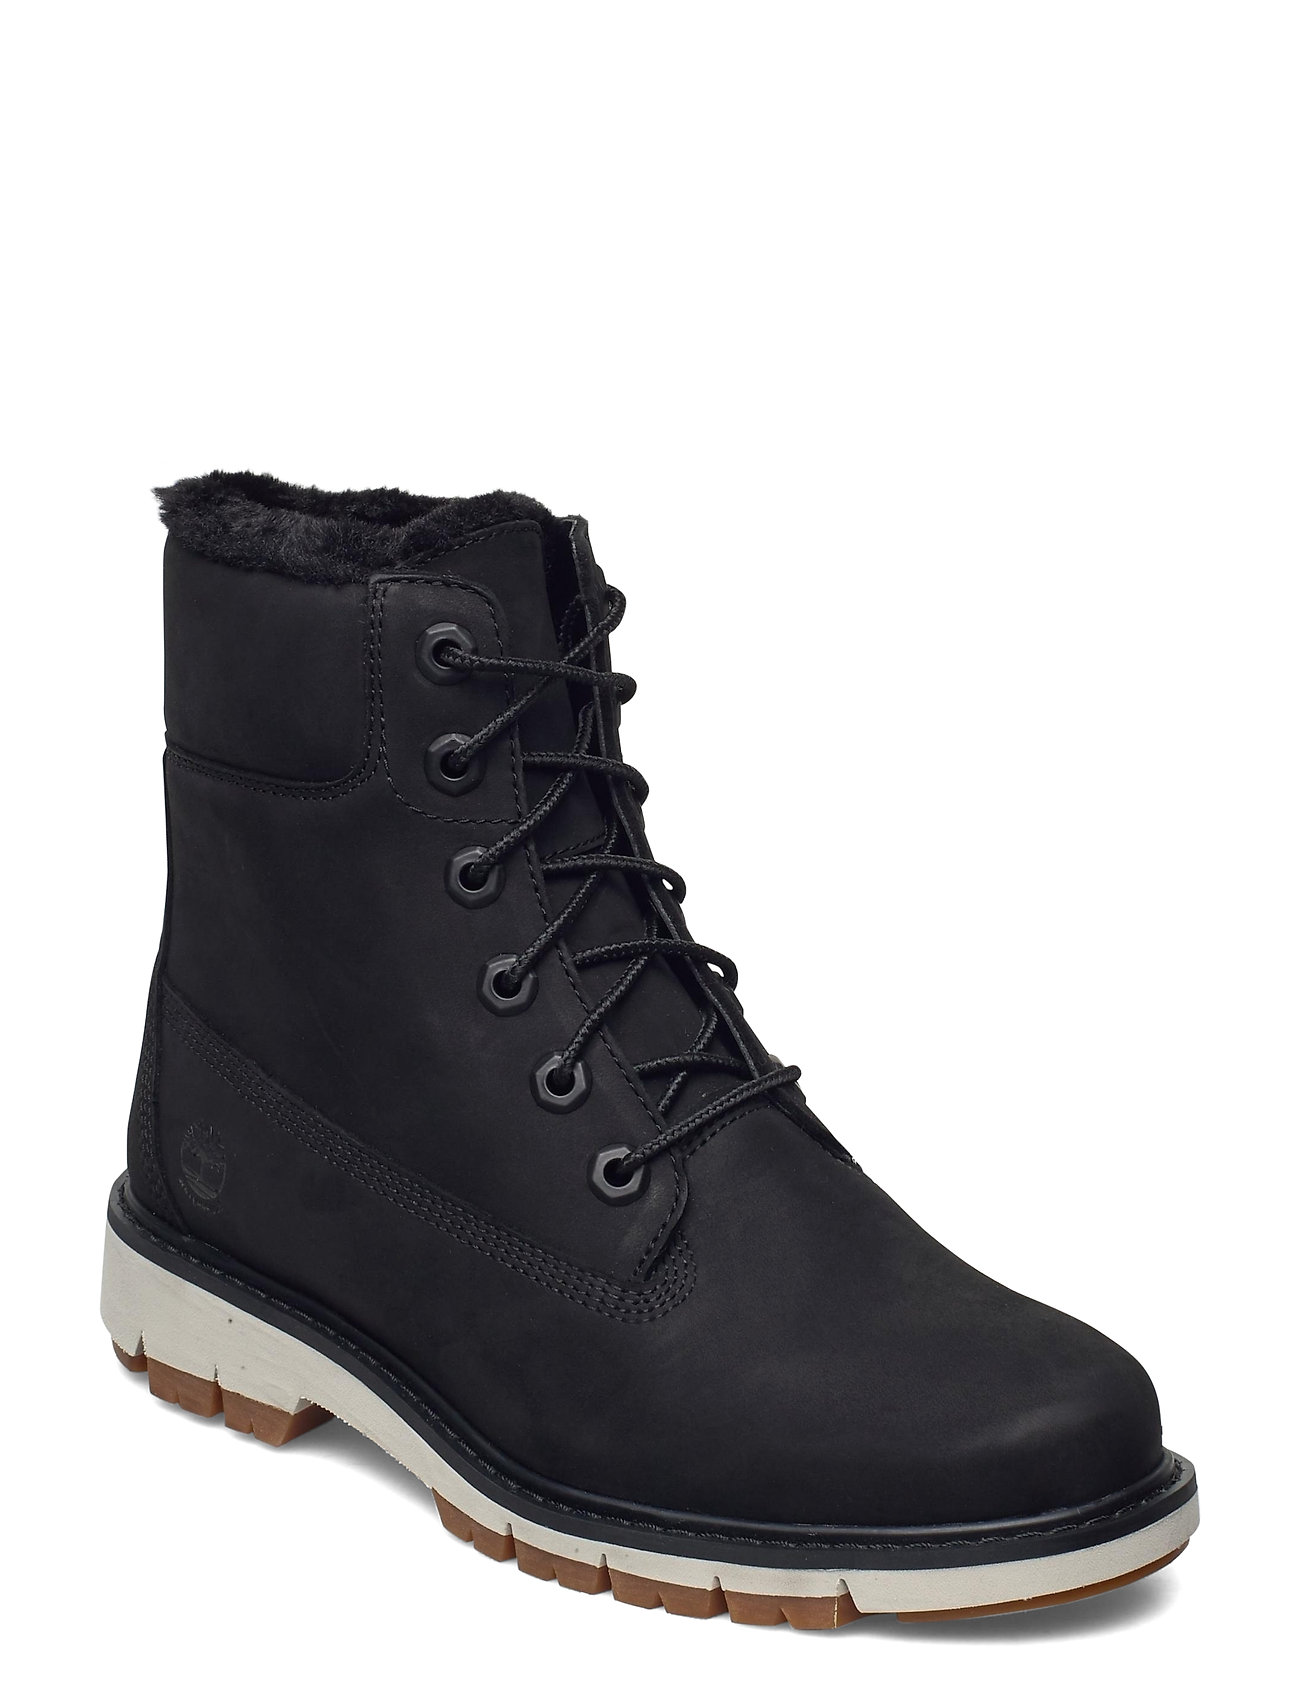 Image of Lucia Way 6in Warm Lined Boot Wp Shoes Boots Ankle Boots Ankle Boot - Flat Sort Timberland (3468951925)